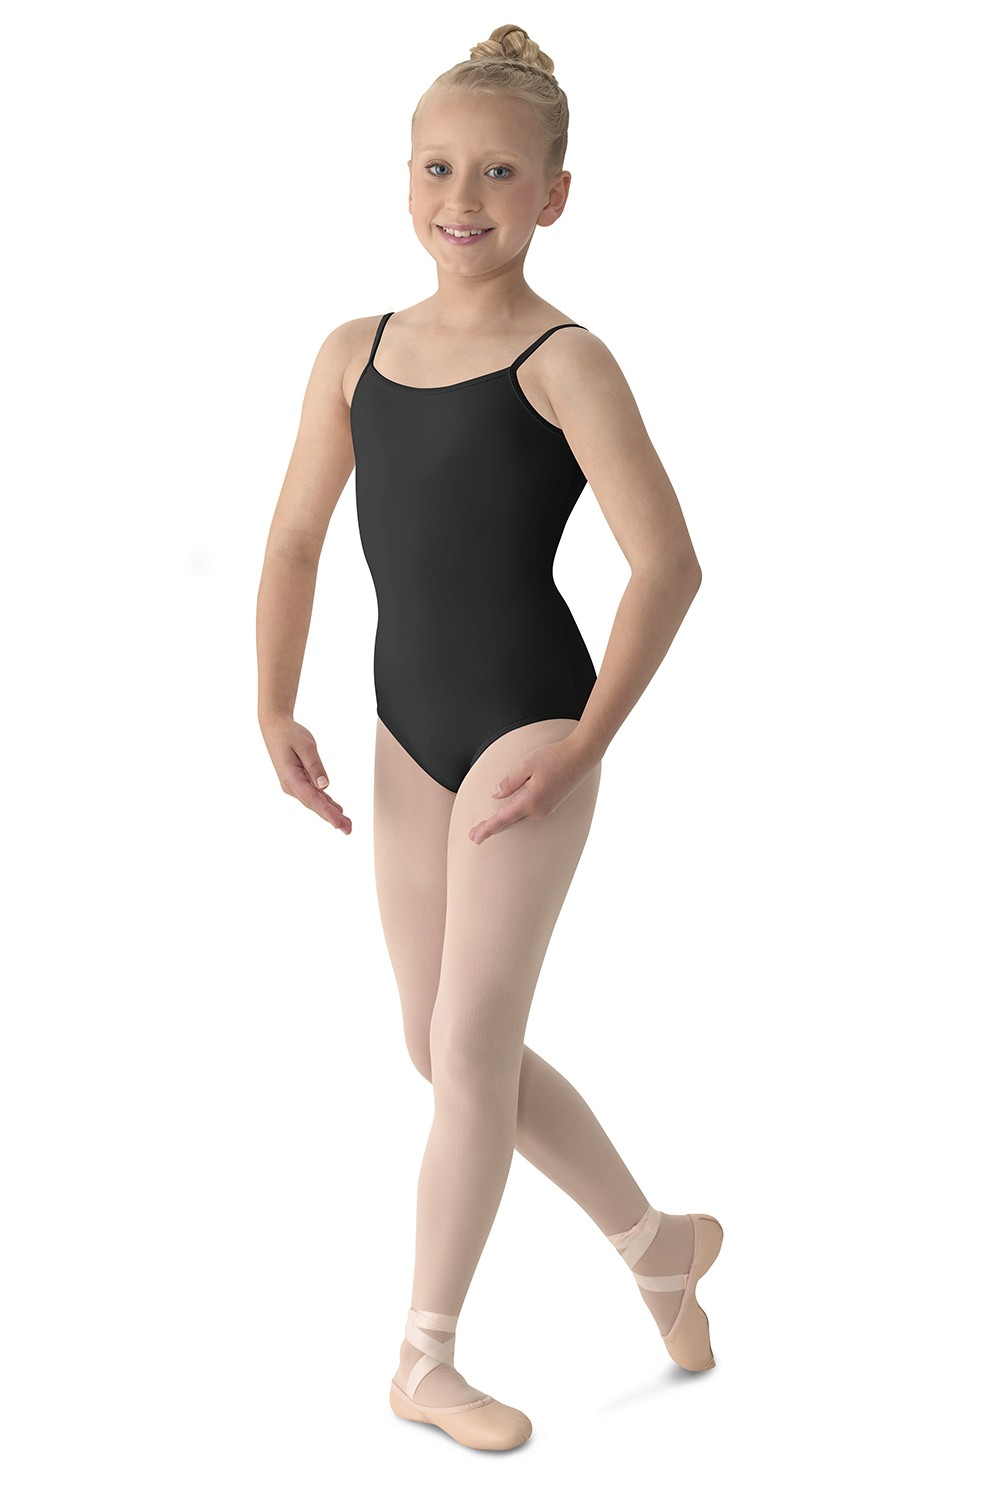 Body Clássico De Alças Finas  Children's Dance Leotards